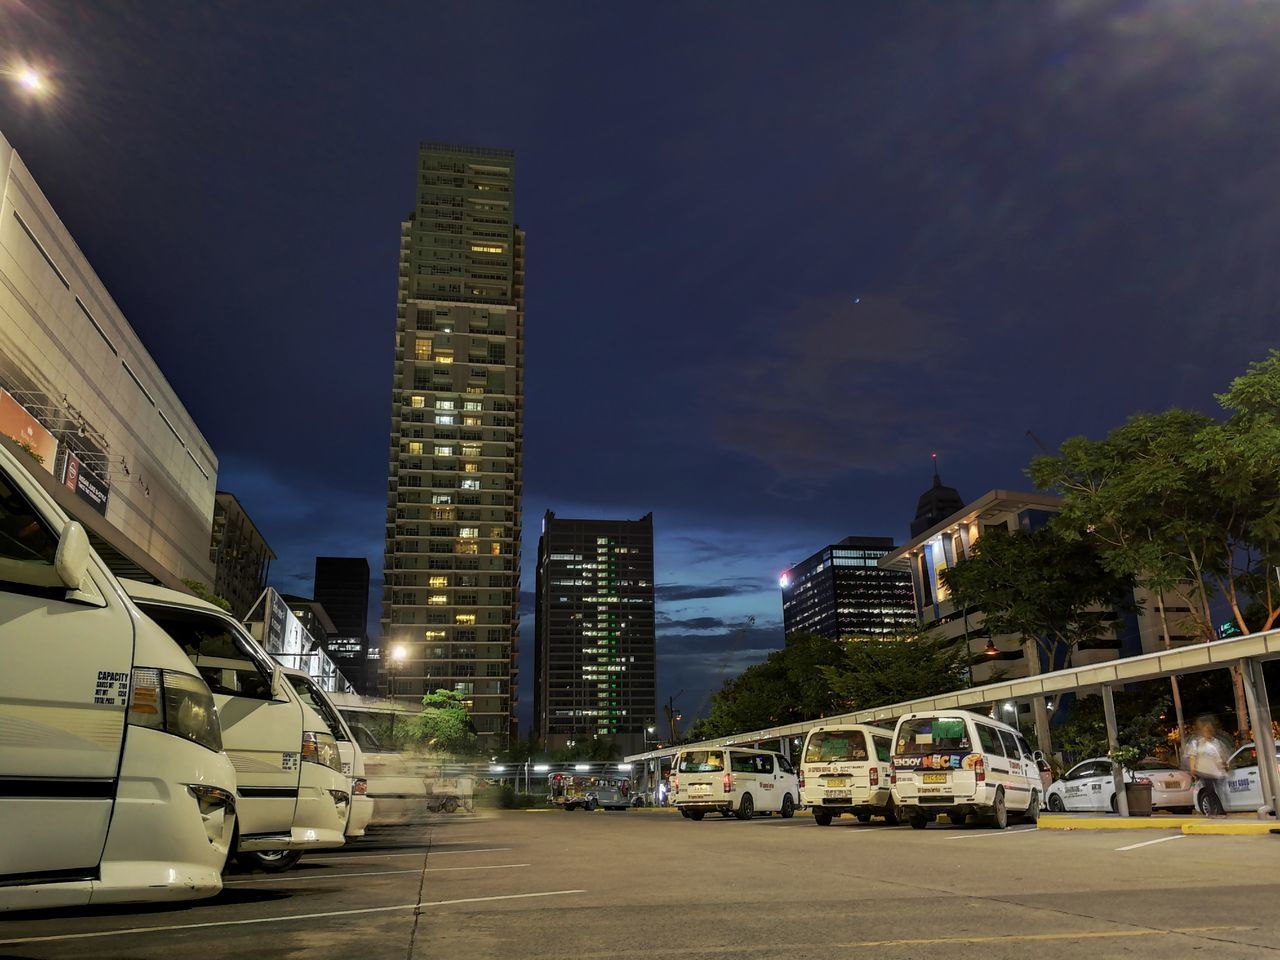 architecture, building exterior, transportation, car, mode of transport, city, built structure, land vehicle, modern, skyscraper, illuminated, road, street, night, outdoors, cityscape, travel destinations, no people, sky